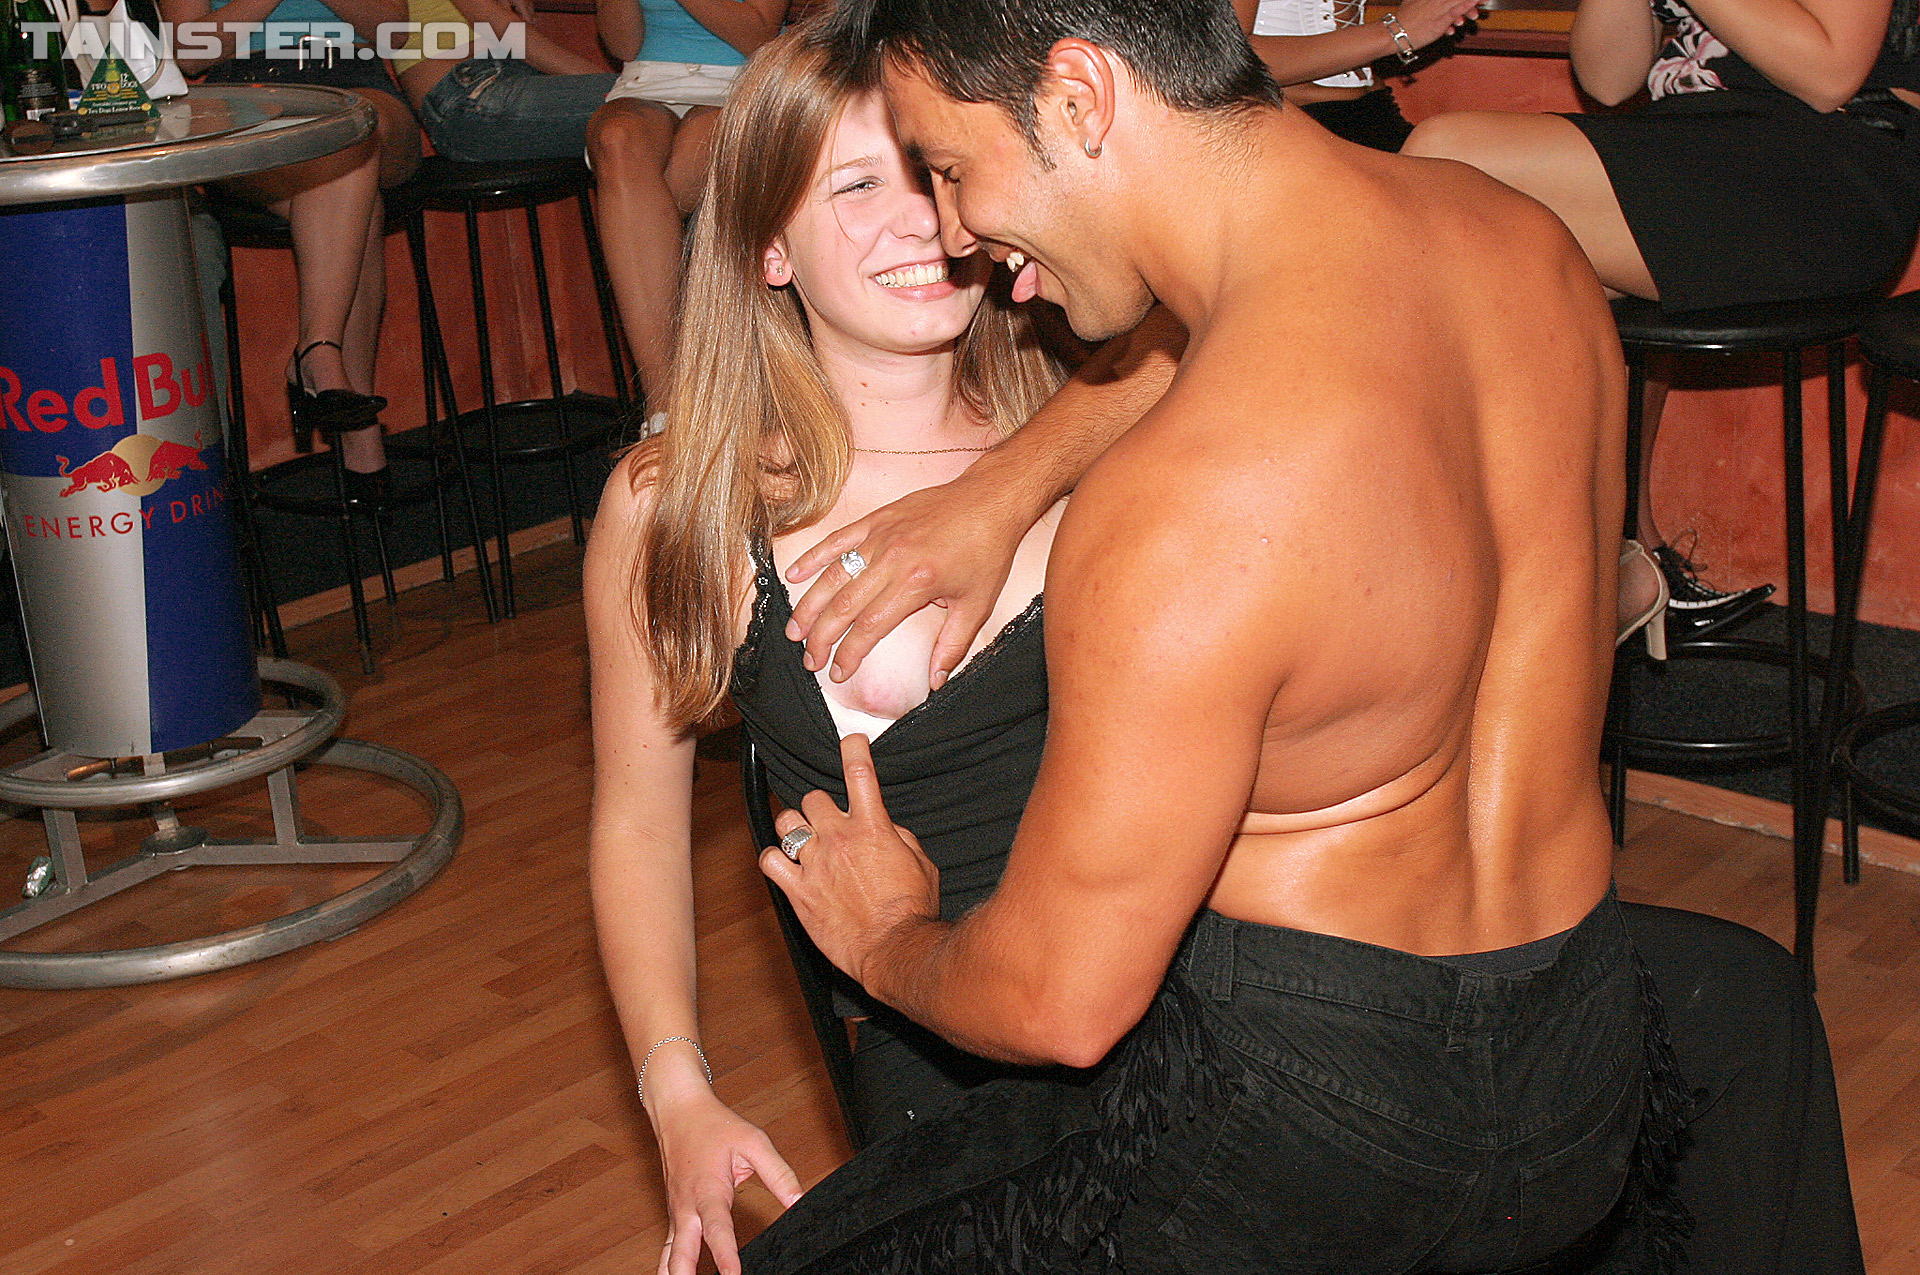 Bisexual female strippers